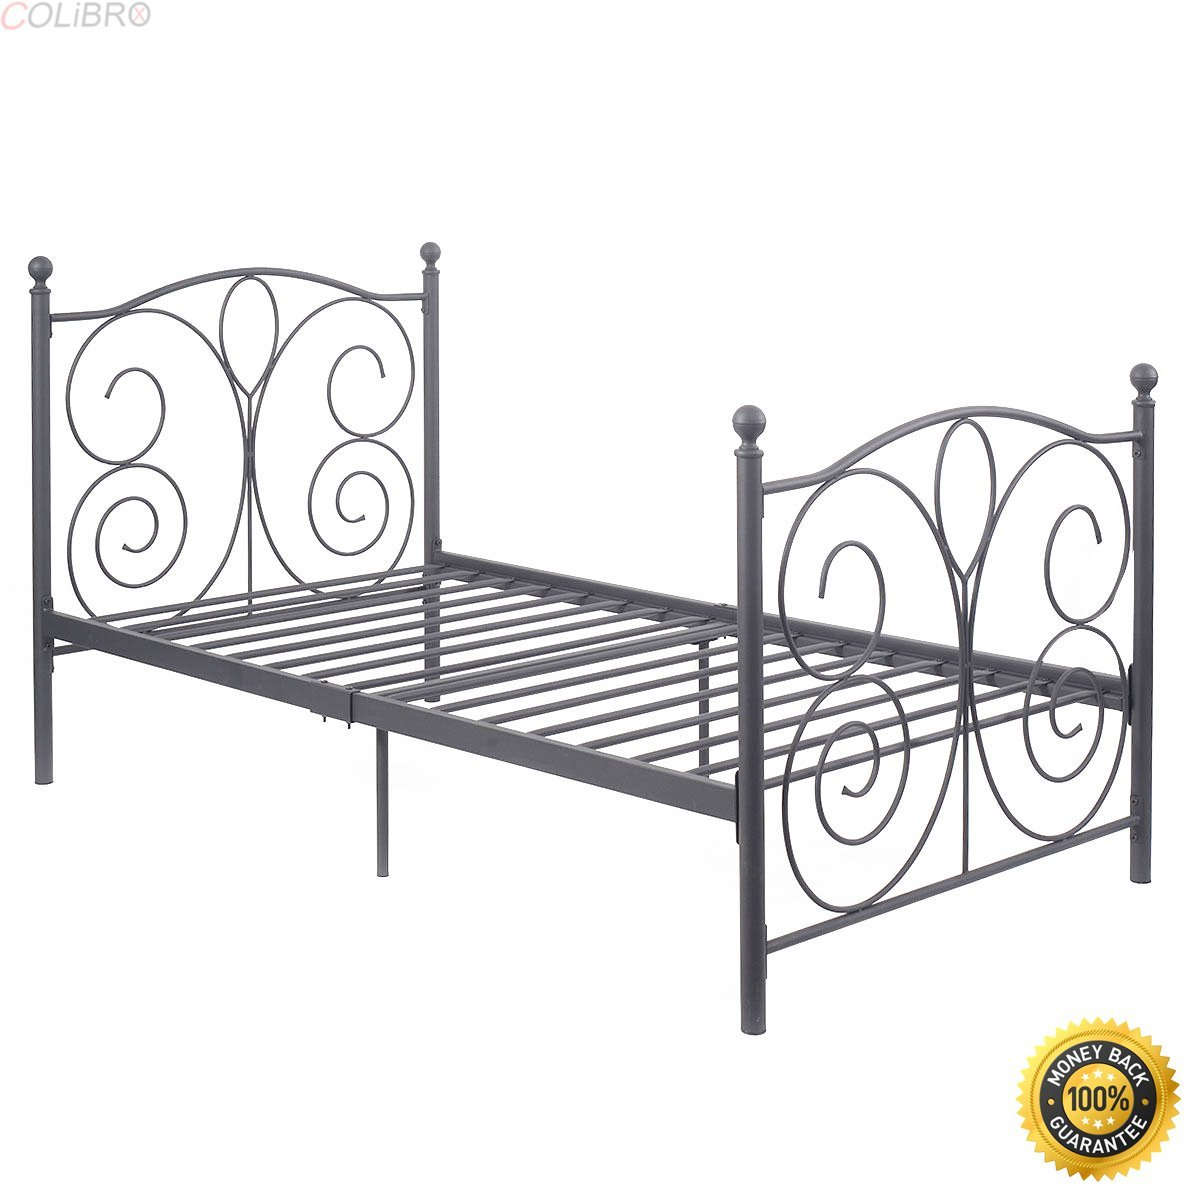 Cheap Extra High Bed Frames Find Extra High Bed Frames Deals On Line At Alibaba Com